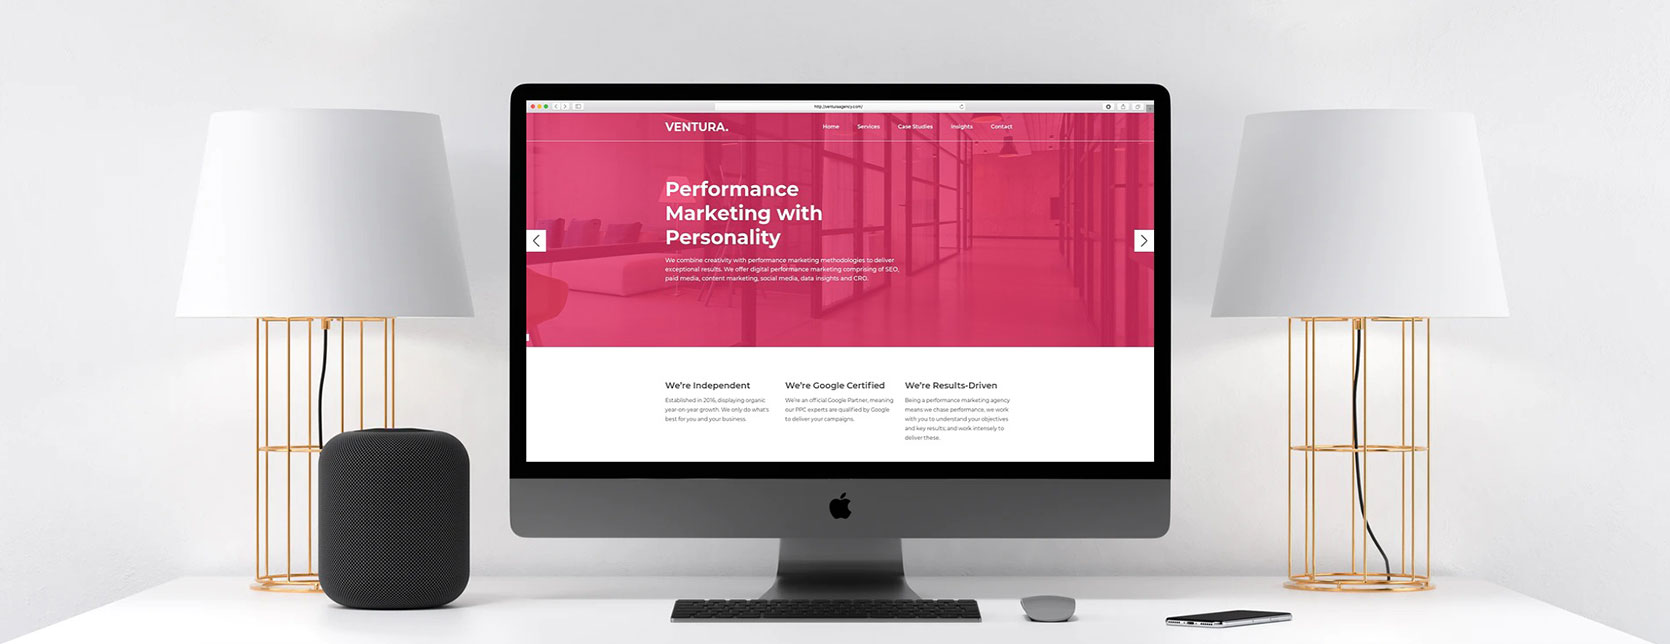 Web Design Case Study - Ventura Agency